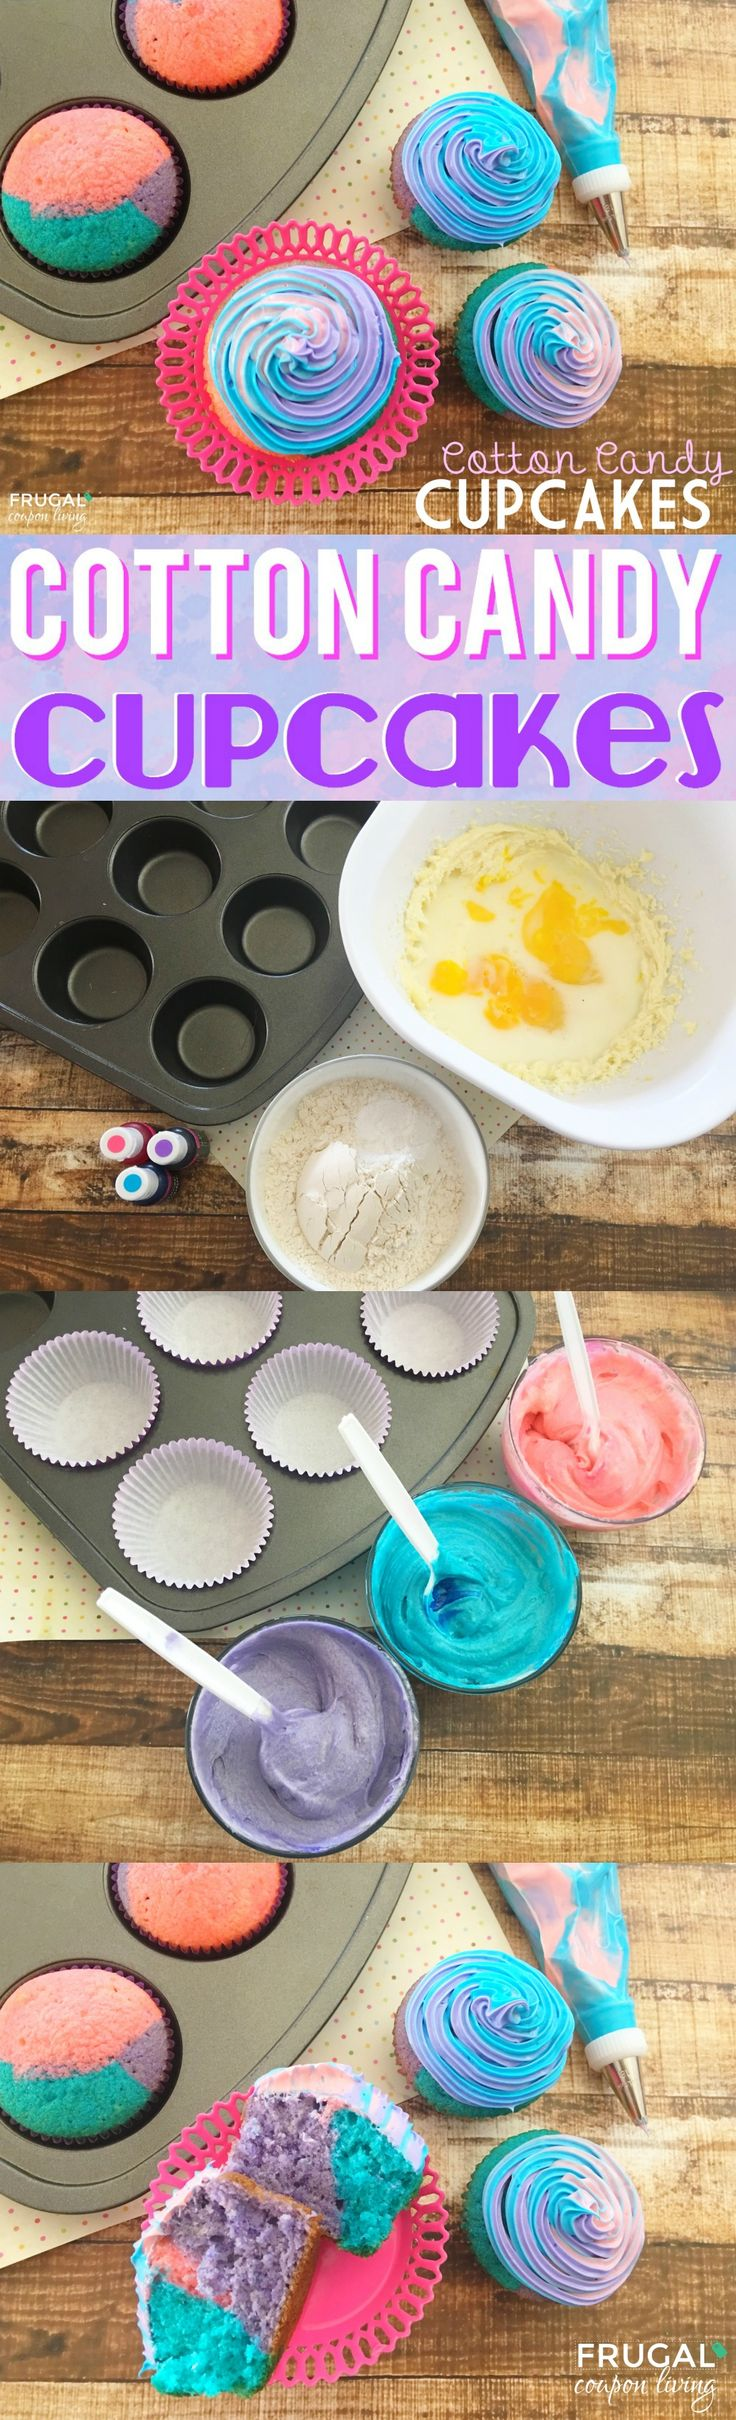 Cotton Candy Cupcakes - perfect cupcakes ideas for a party or summertime gathering. Tastes like REAL Cotton Candy and colored to be fun and festive! Details on Frugal Coupon Living.  #frugalcouponliving #cottoncandy #homemadecottoncandy #cupcakes #cupcakerecipes #recipes #cottoncandyrecipes